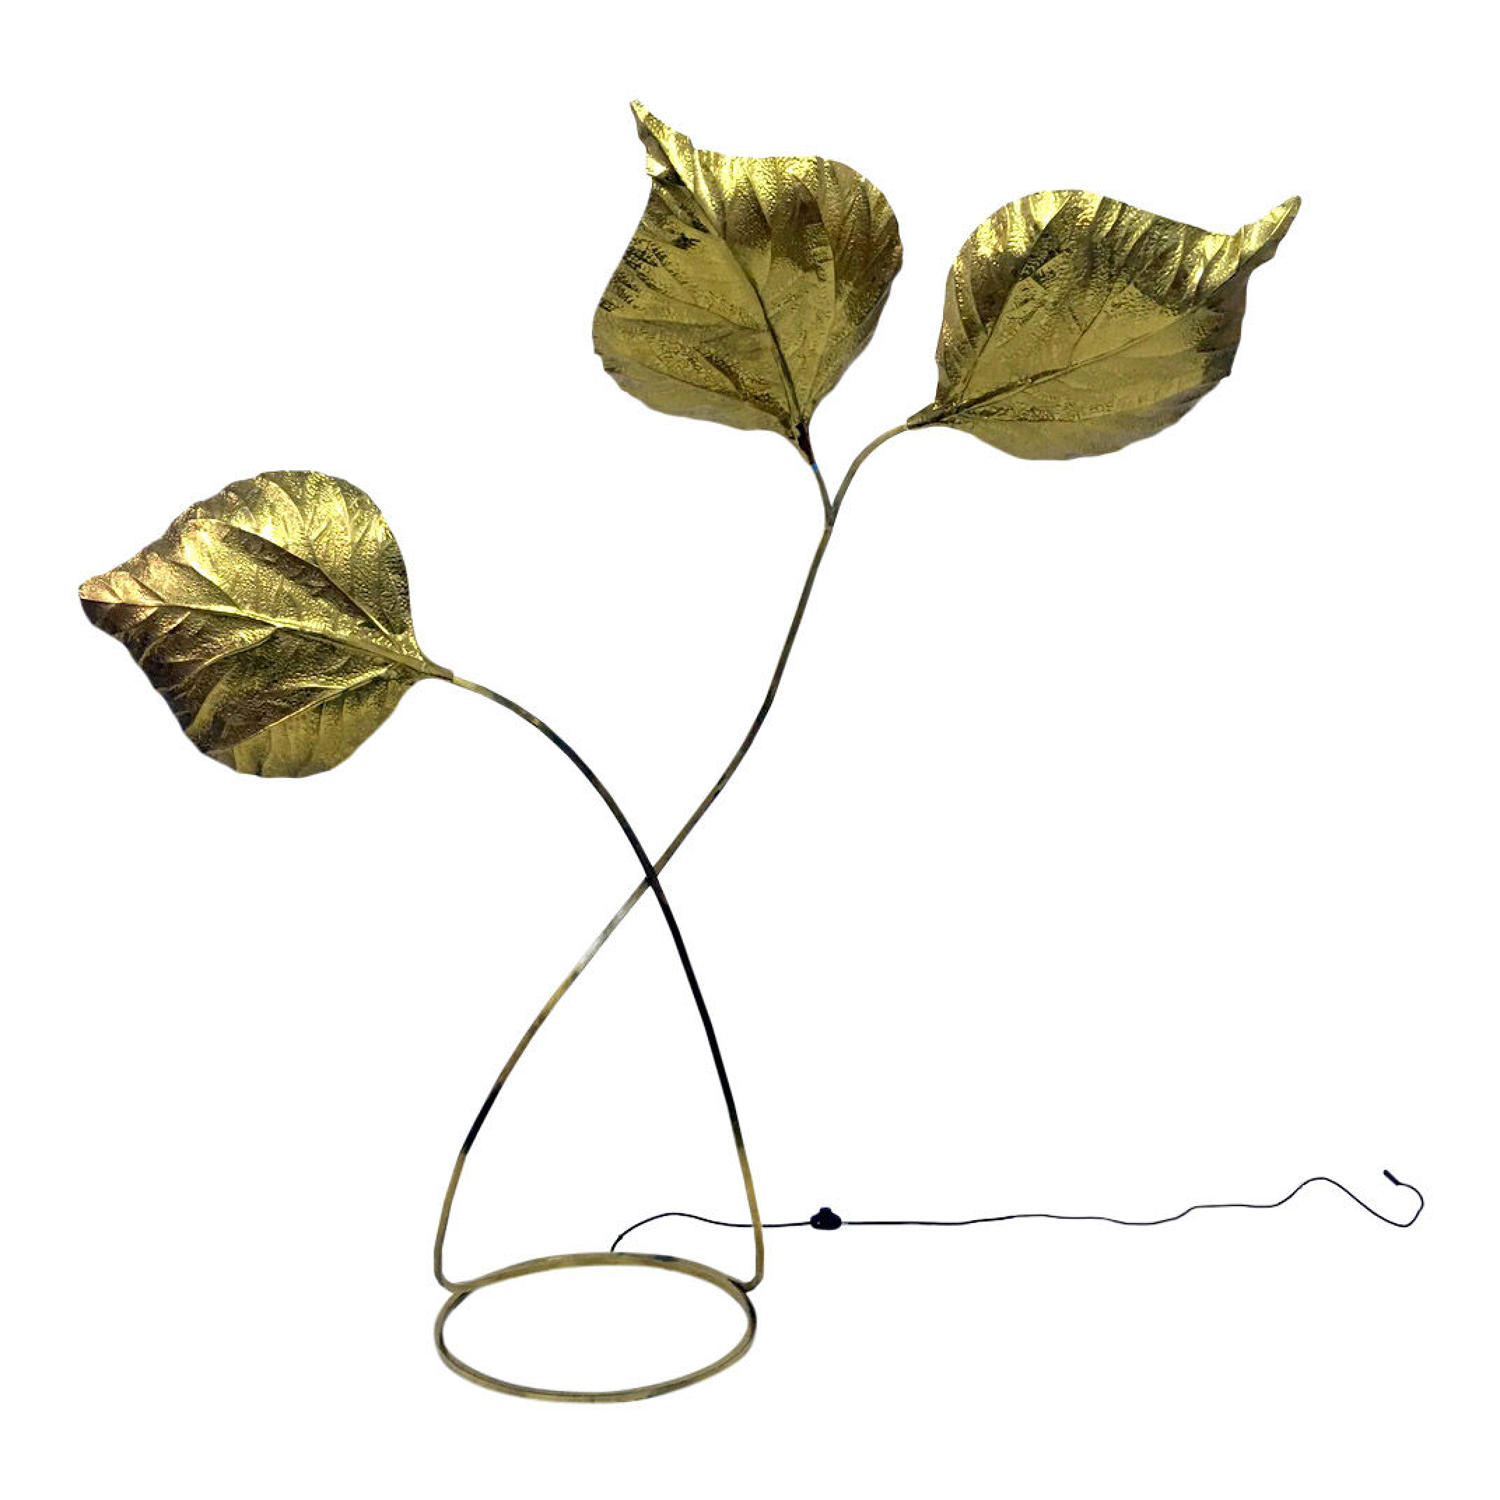 1970s brass rhubarb leaf floor lamp by Tommaso Barbi